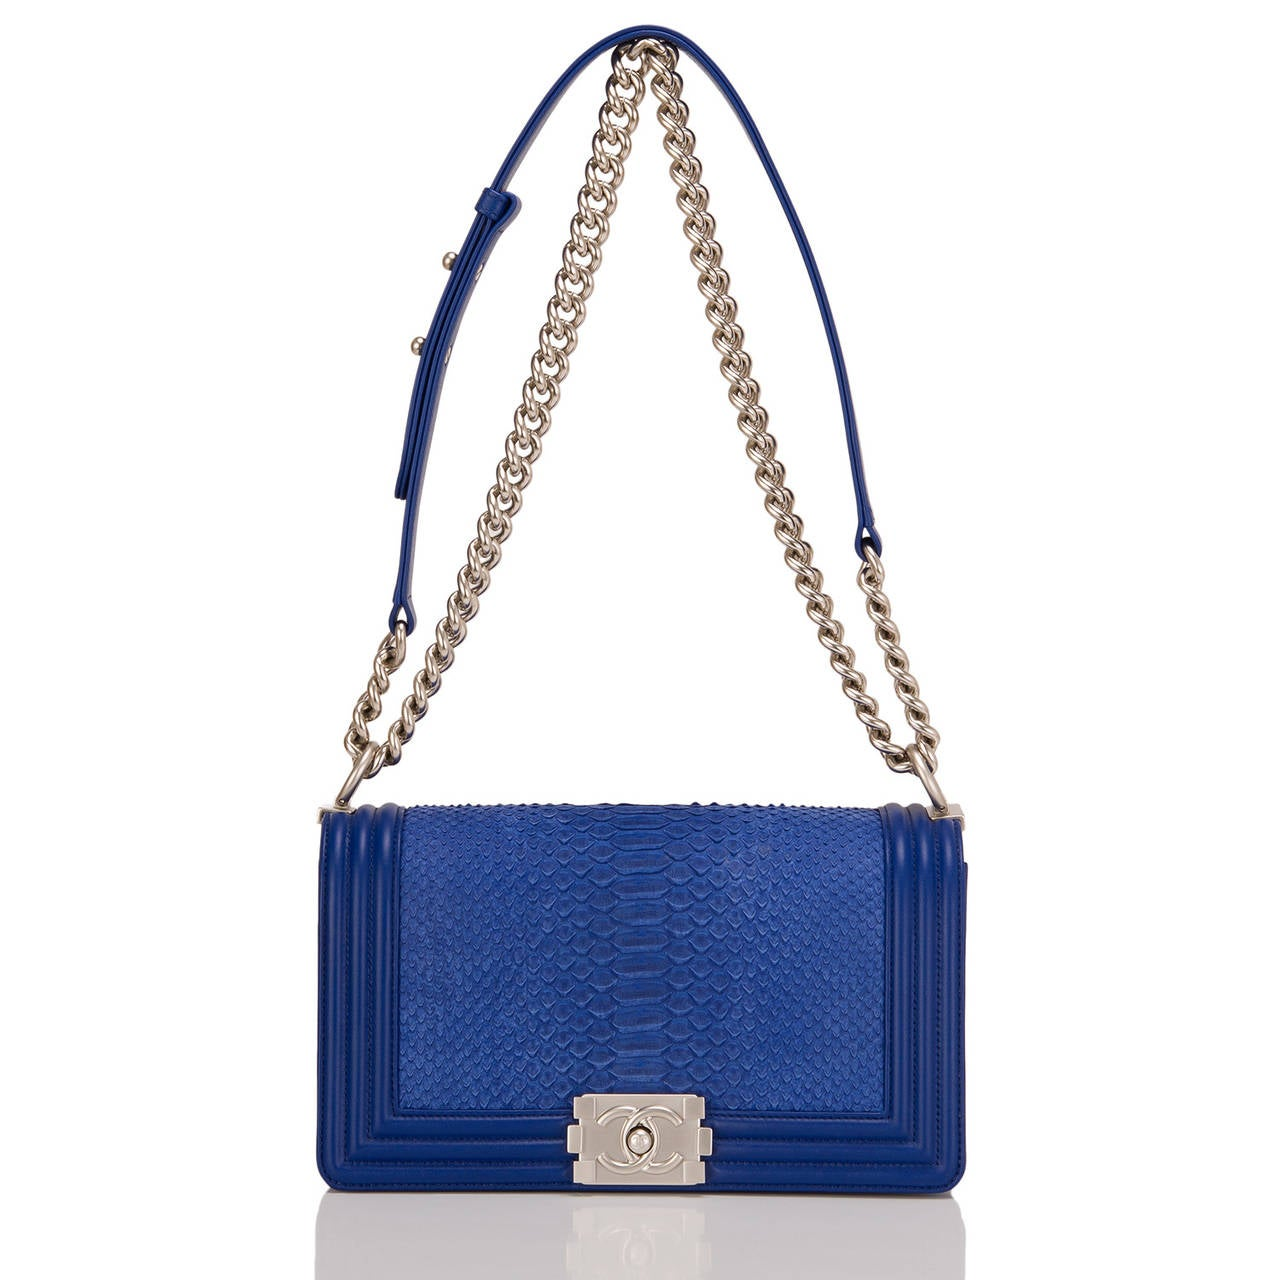 Chanel Blue Python Medium Boy Bag For Sale 1